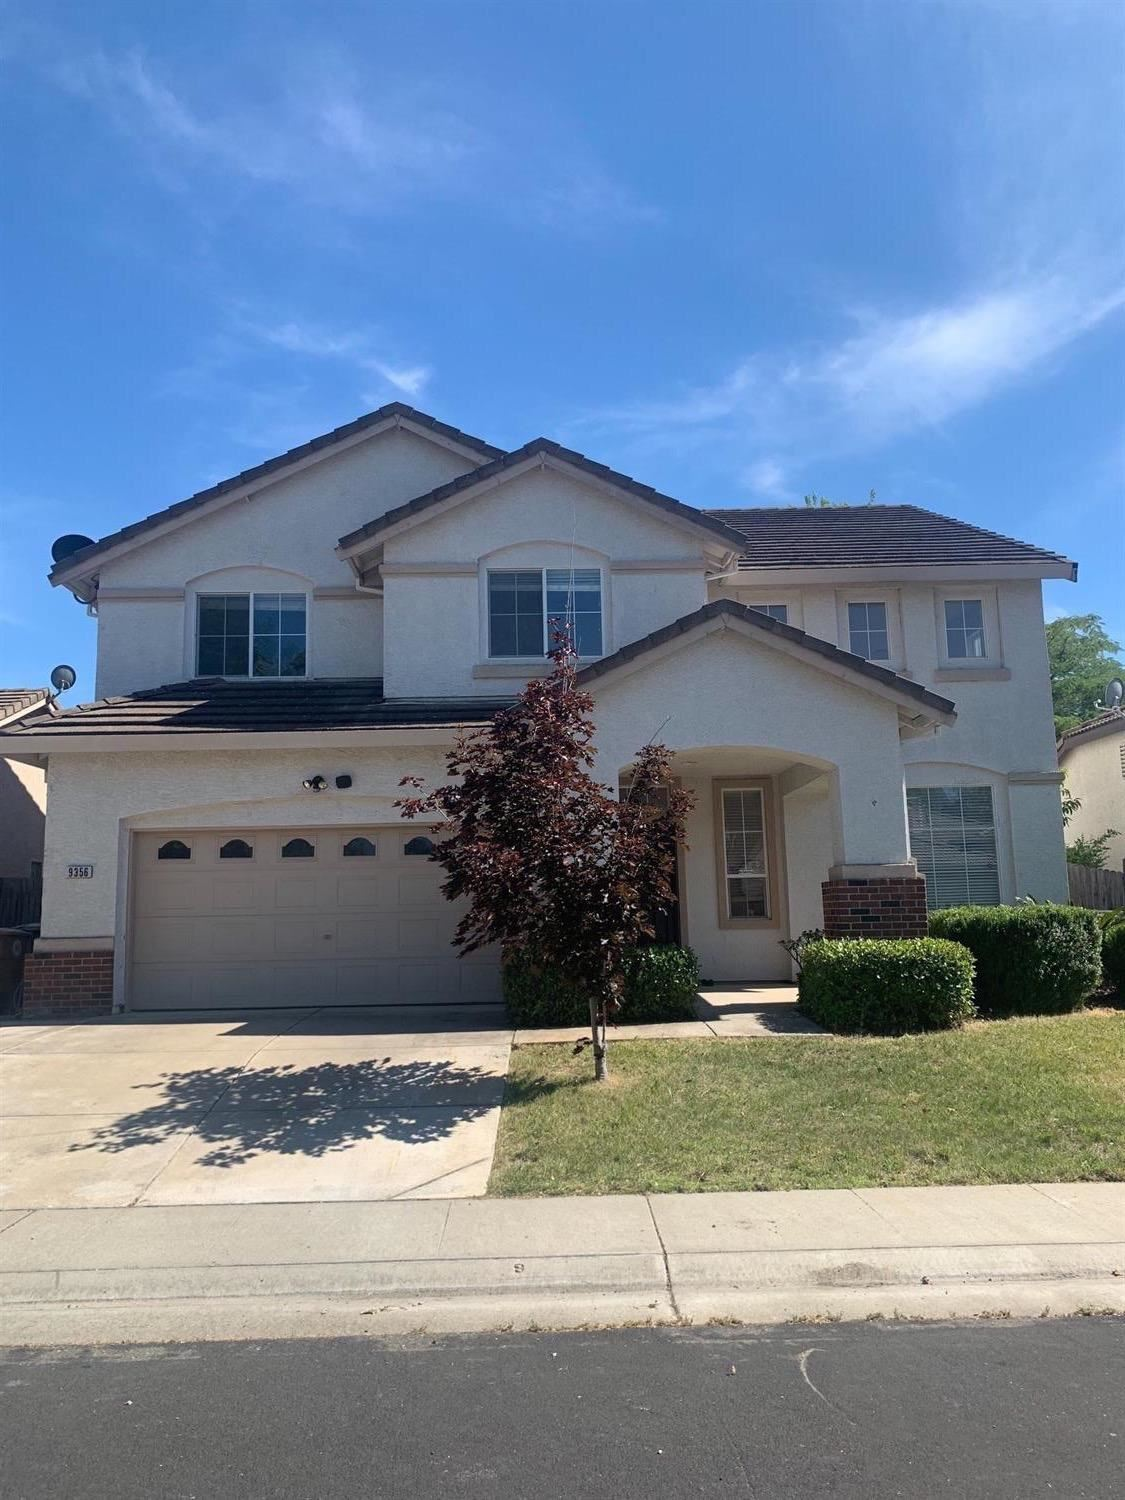 9356 Boulder River Way, Elk Grove, CA 95624 - #: 20031712